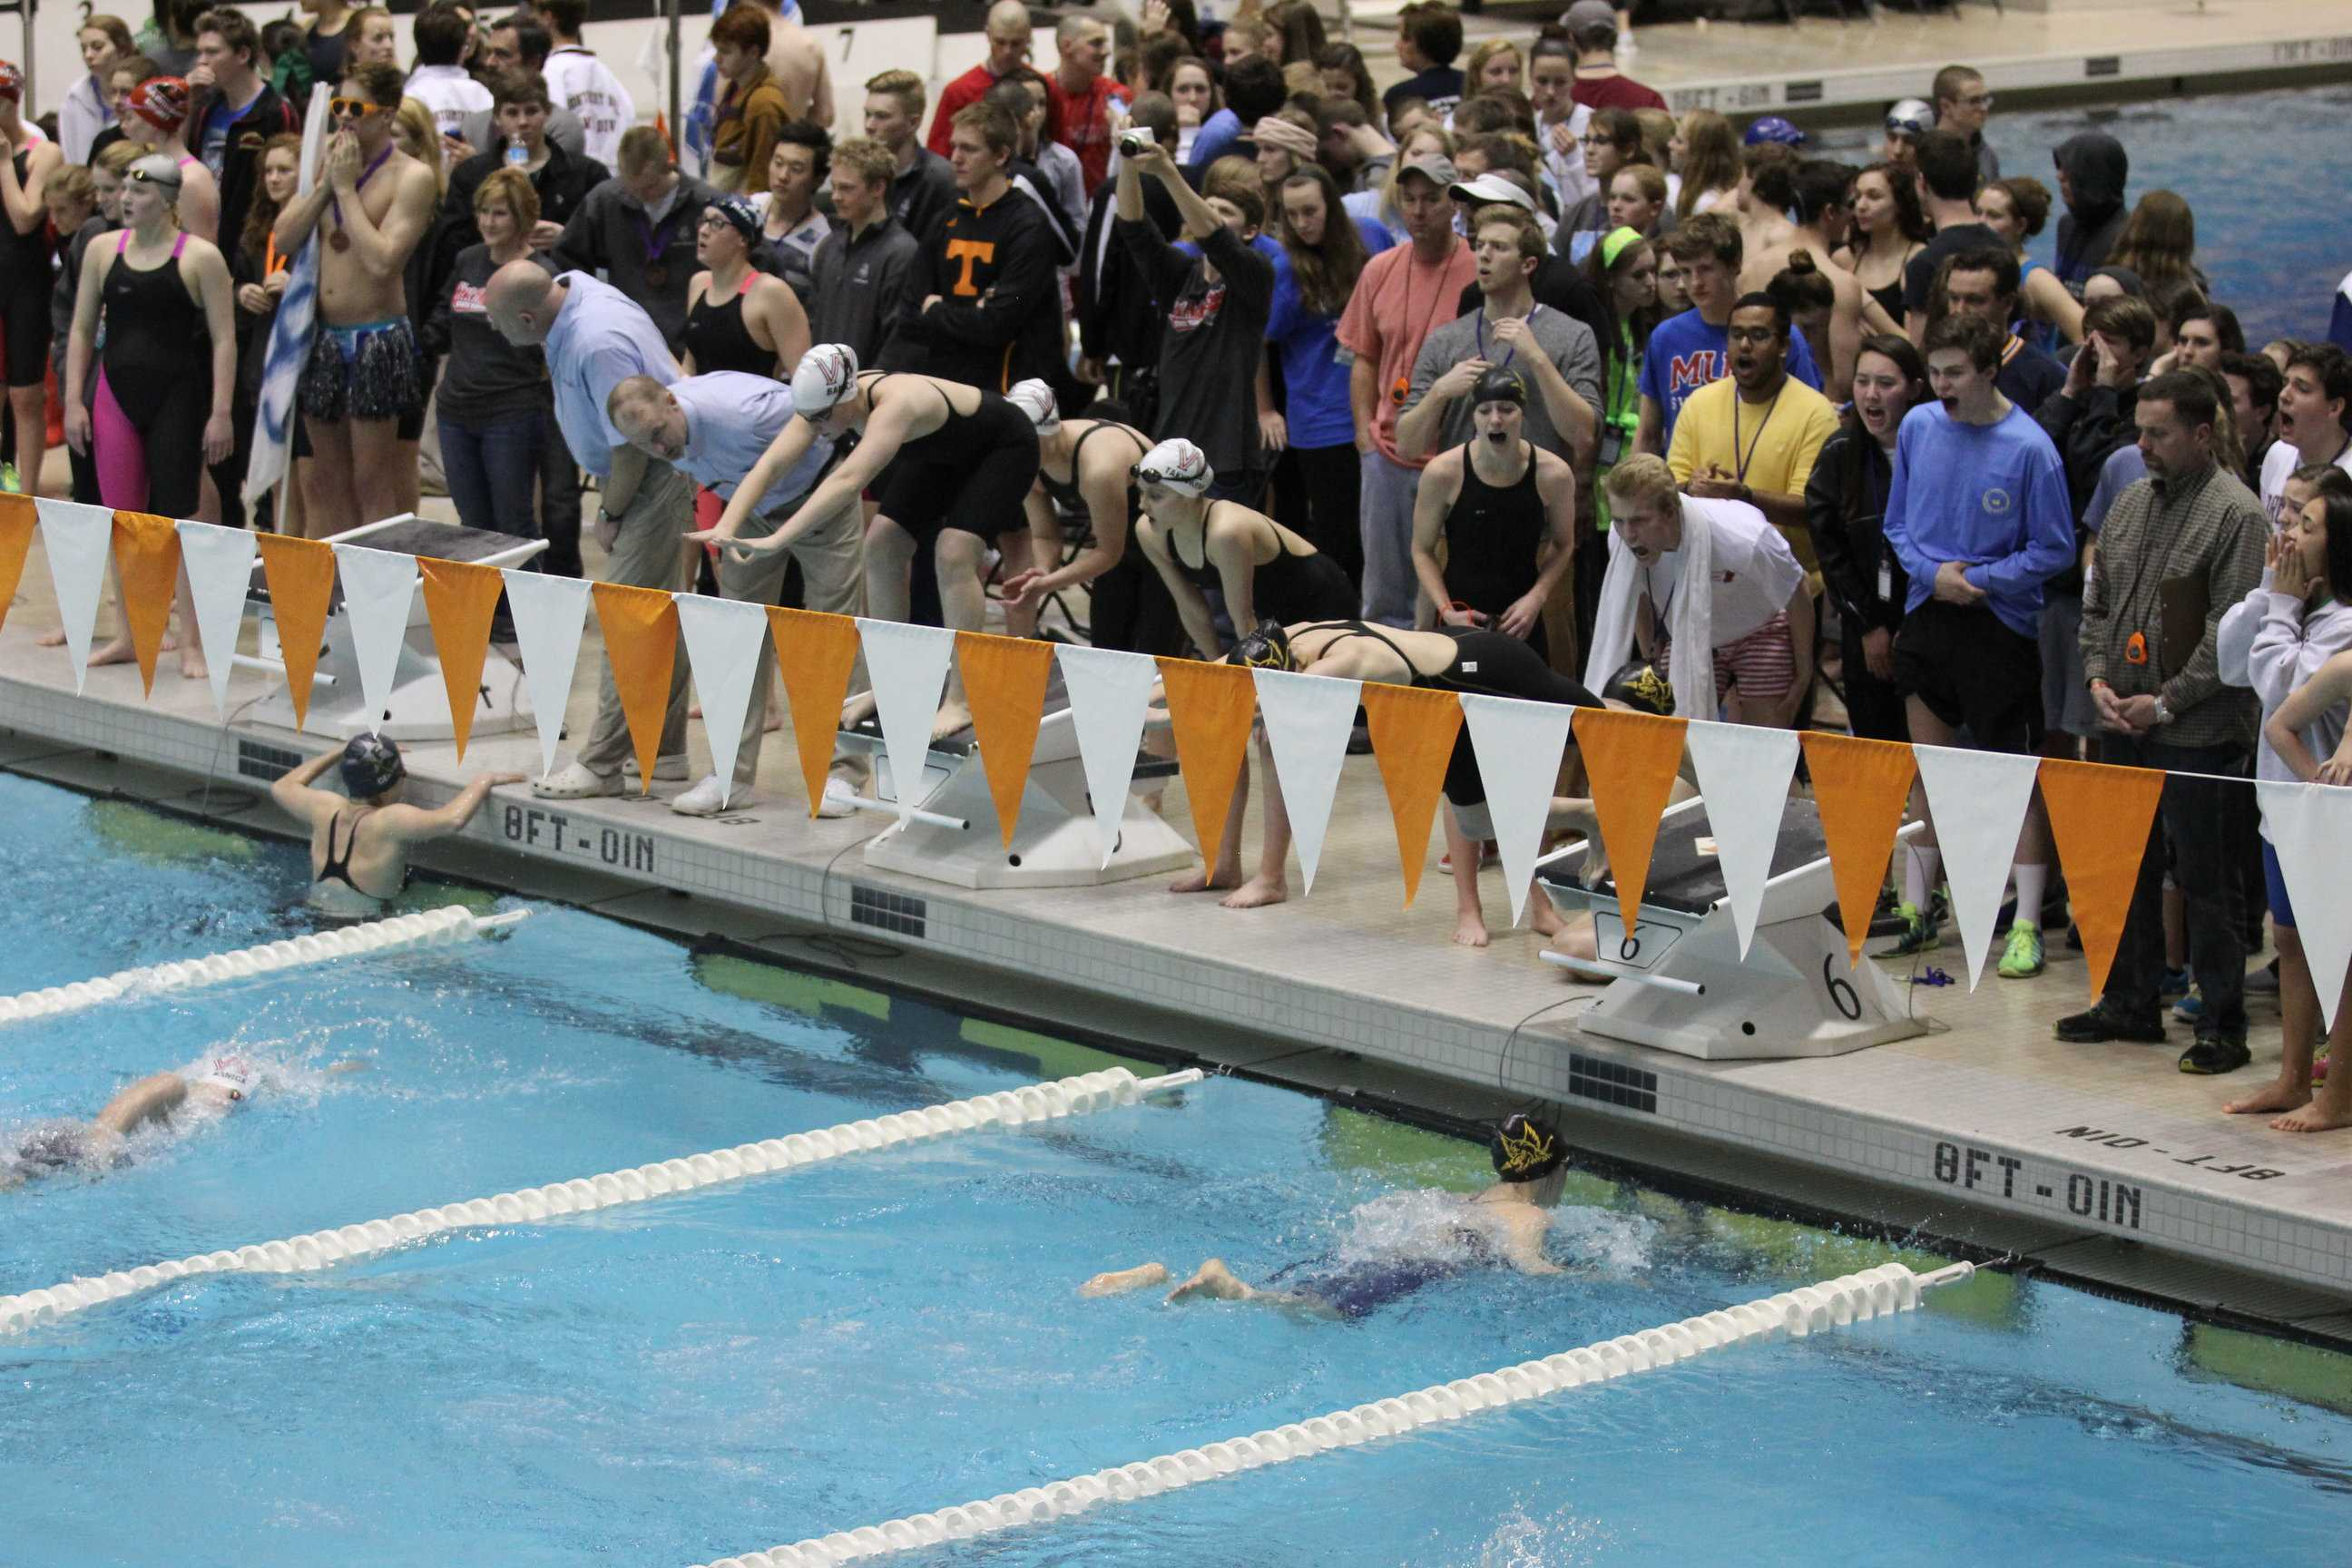 Lexie Marotta dives in after Julia Fogel during a relay while their team cheers them on. A total of seven school records were broken by the Gryphons at the state championships, including Marotta and Fogel's girls' relays.